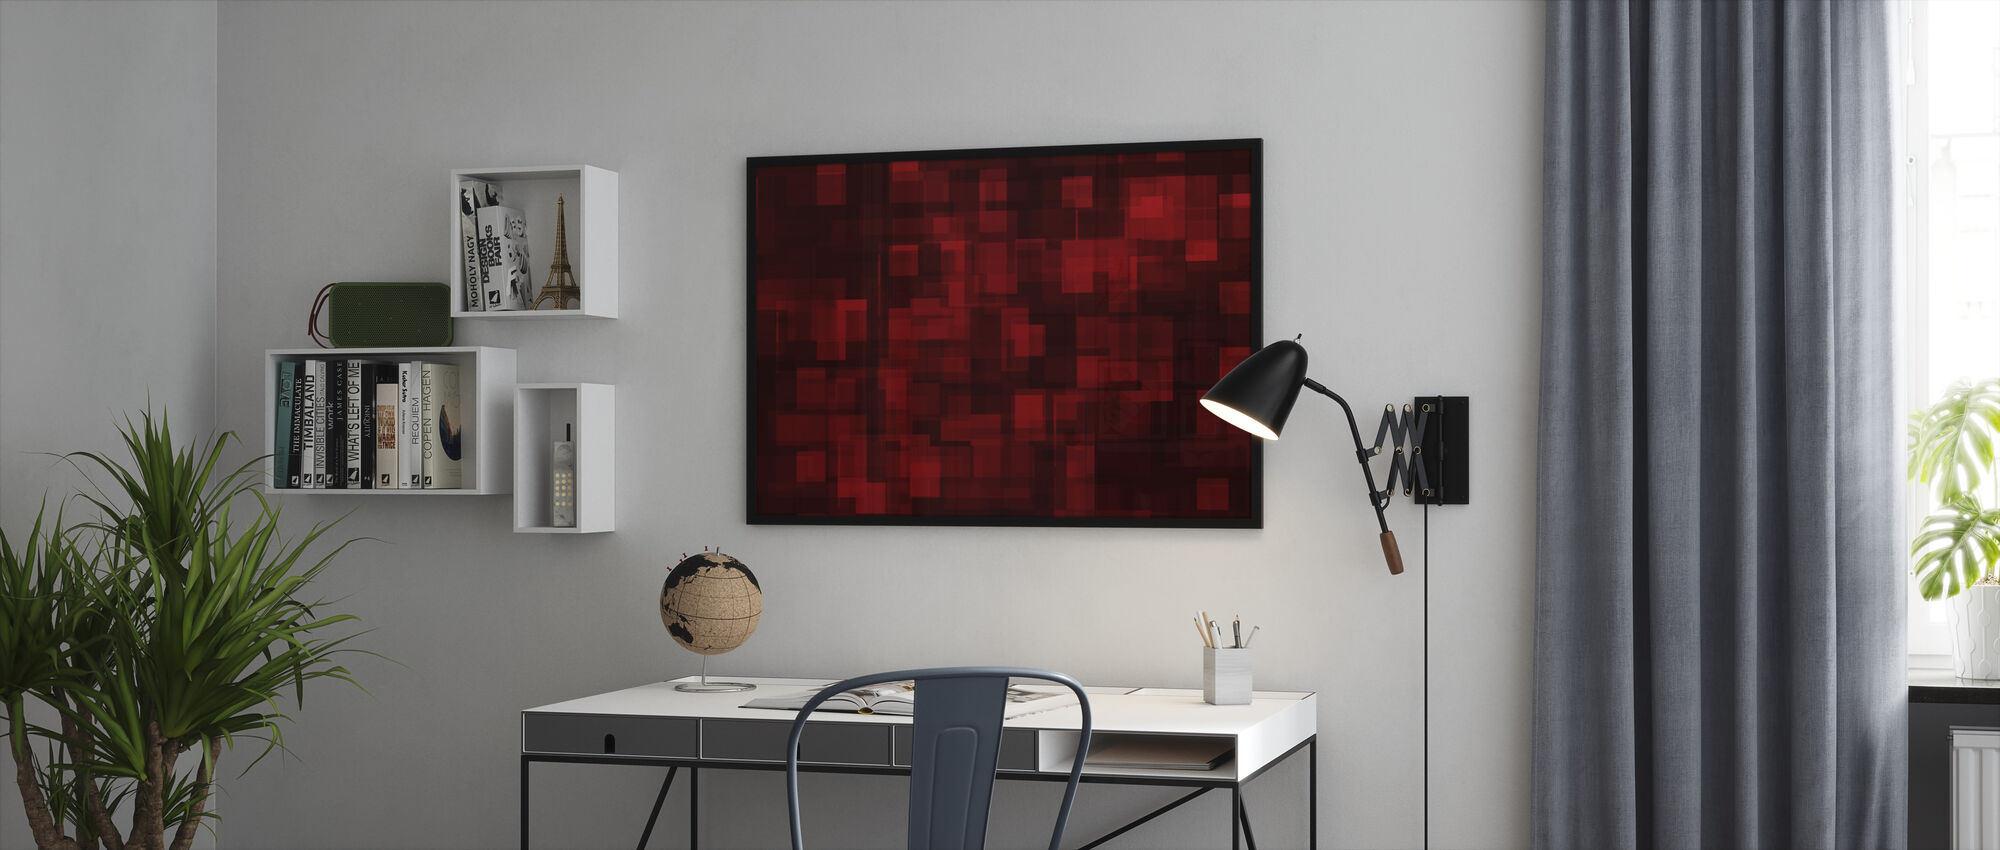 Chaotic Red - Framed print - Office